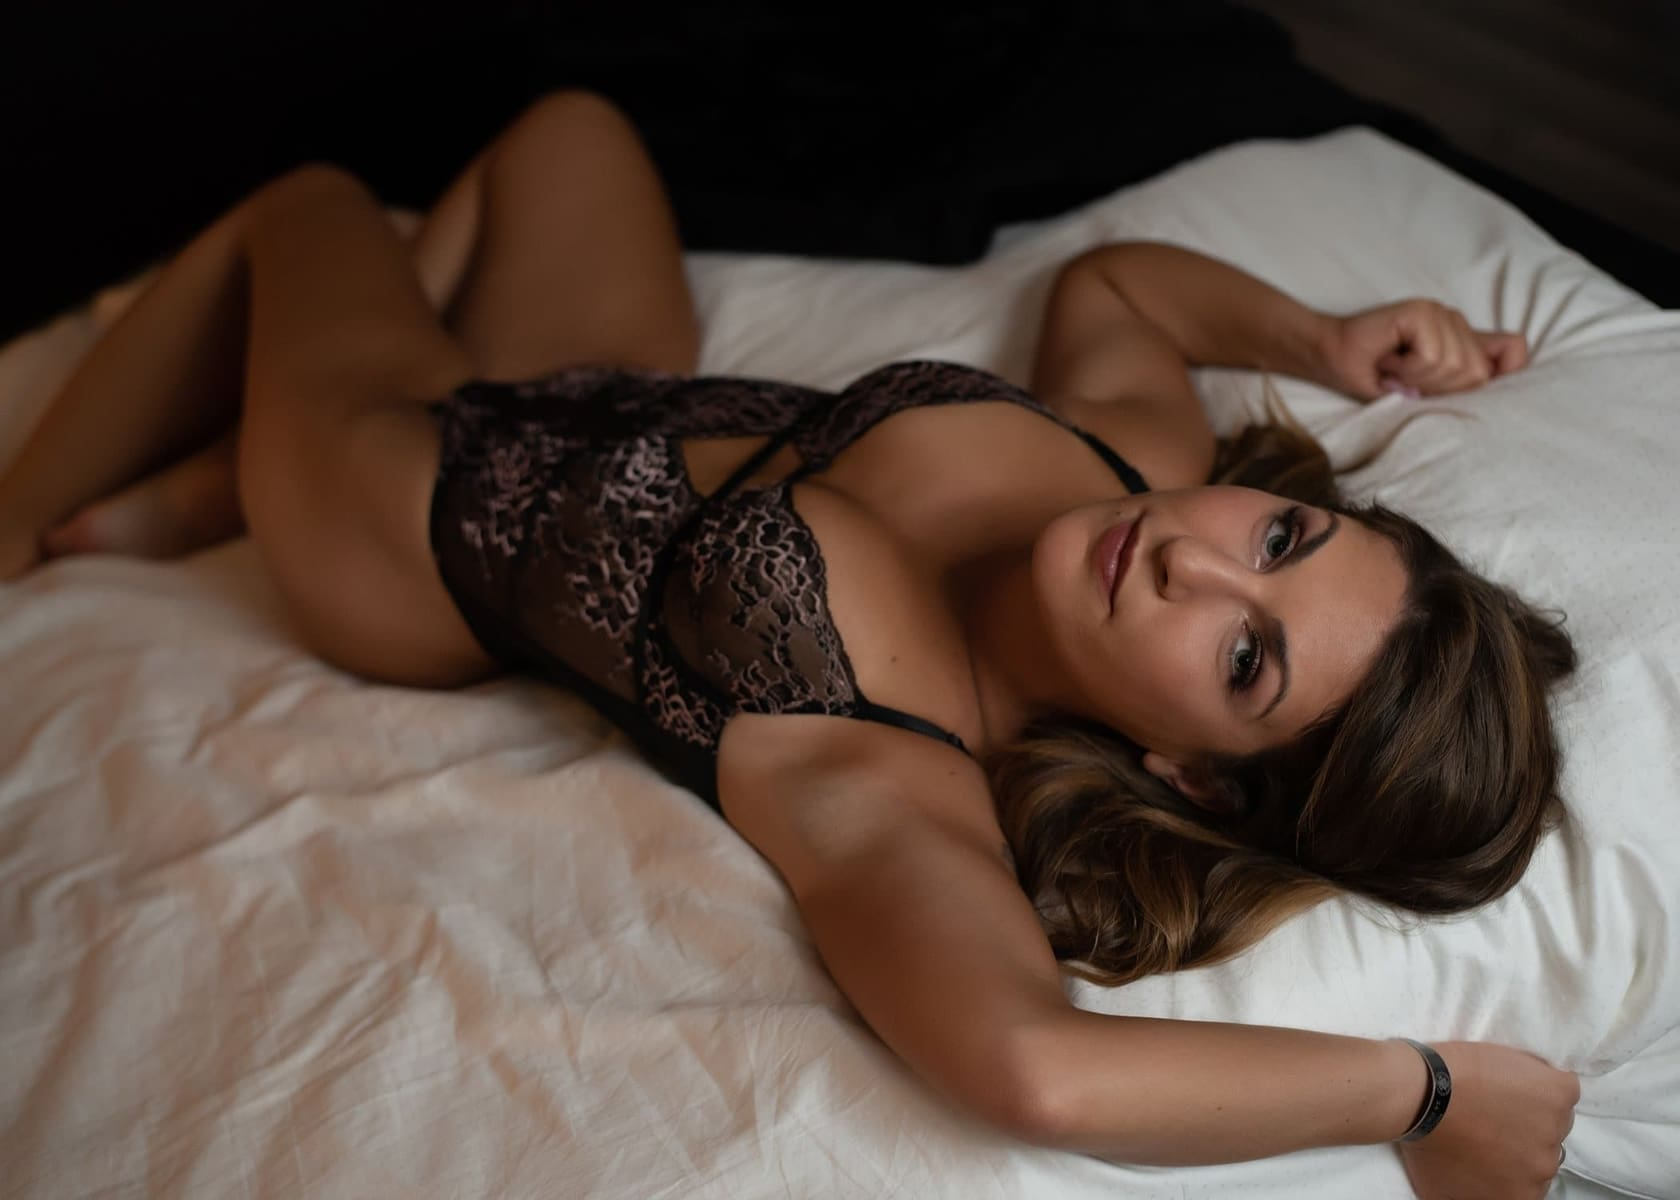 Woman posing on a bed wearing black lingerie